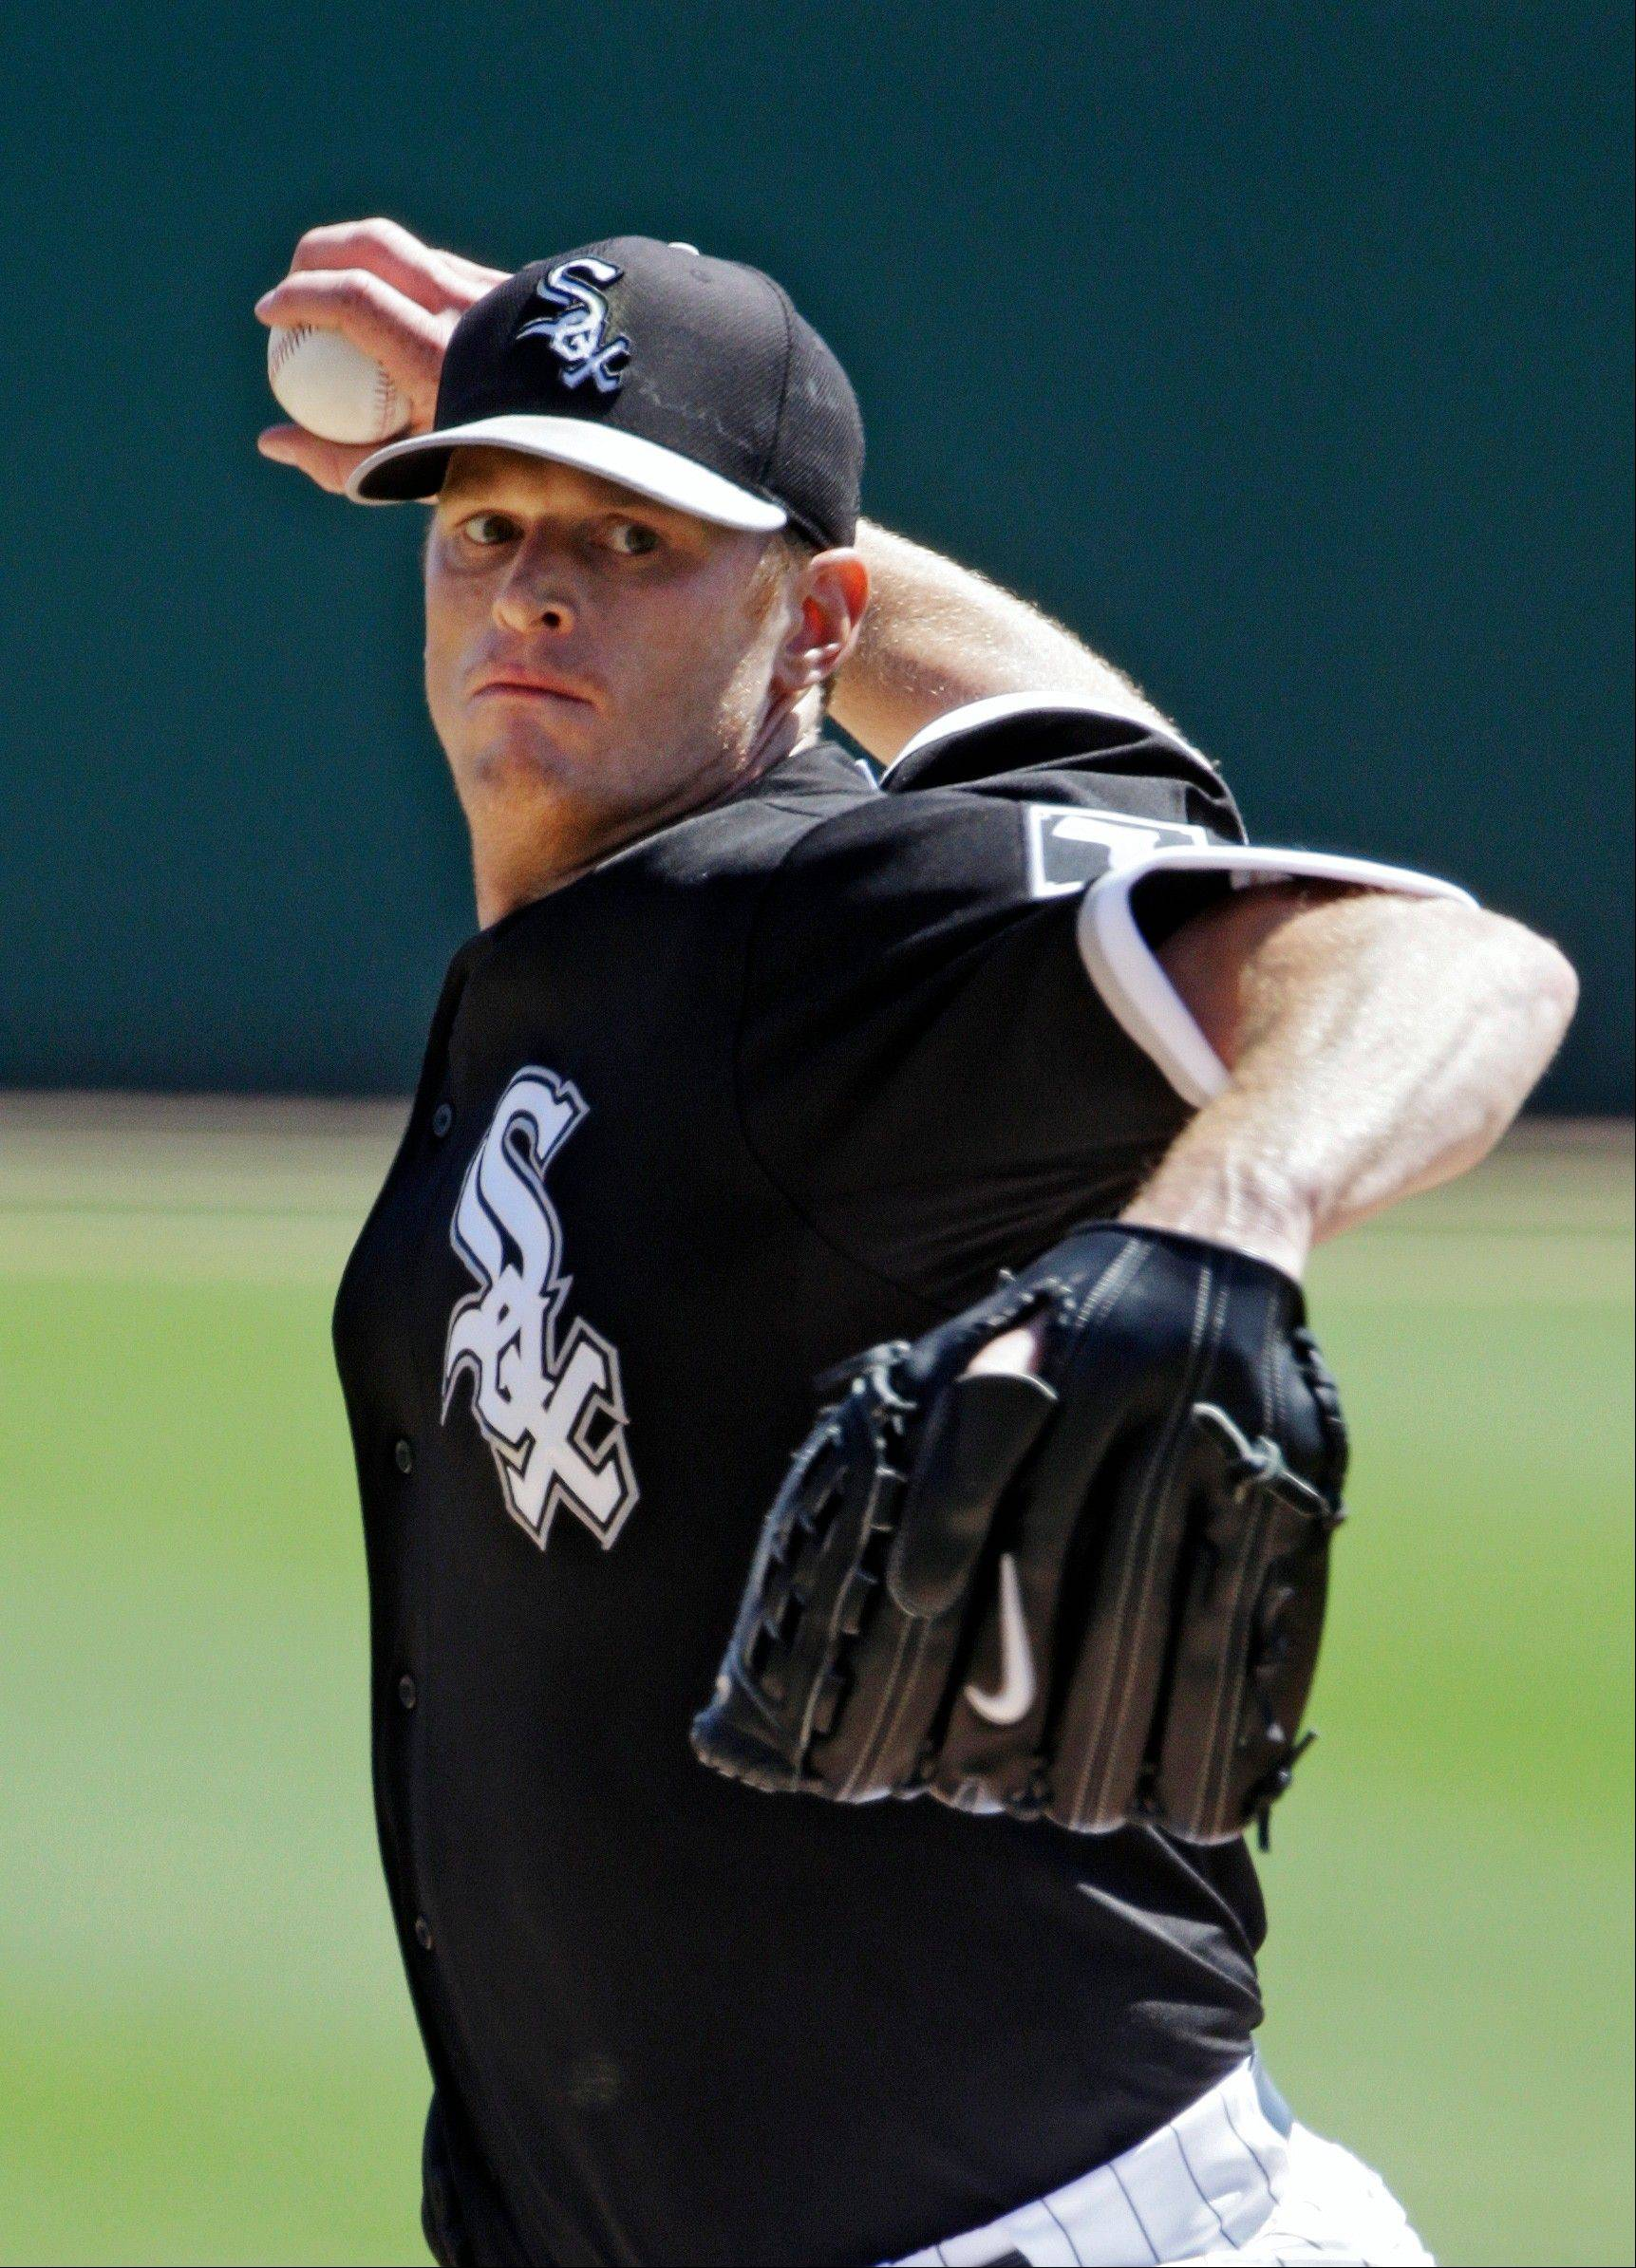 White Sox starting pitcher Gavin Floyd delivers against the Los Angeles Angels in a March spring training game.